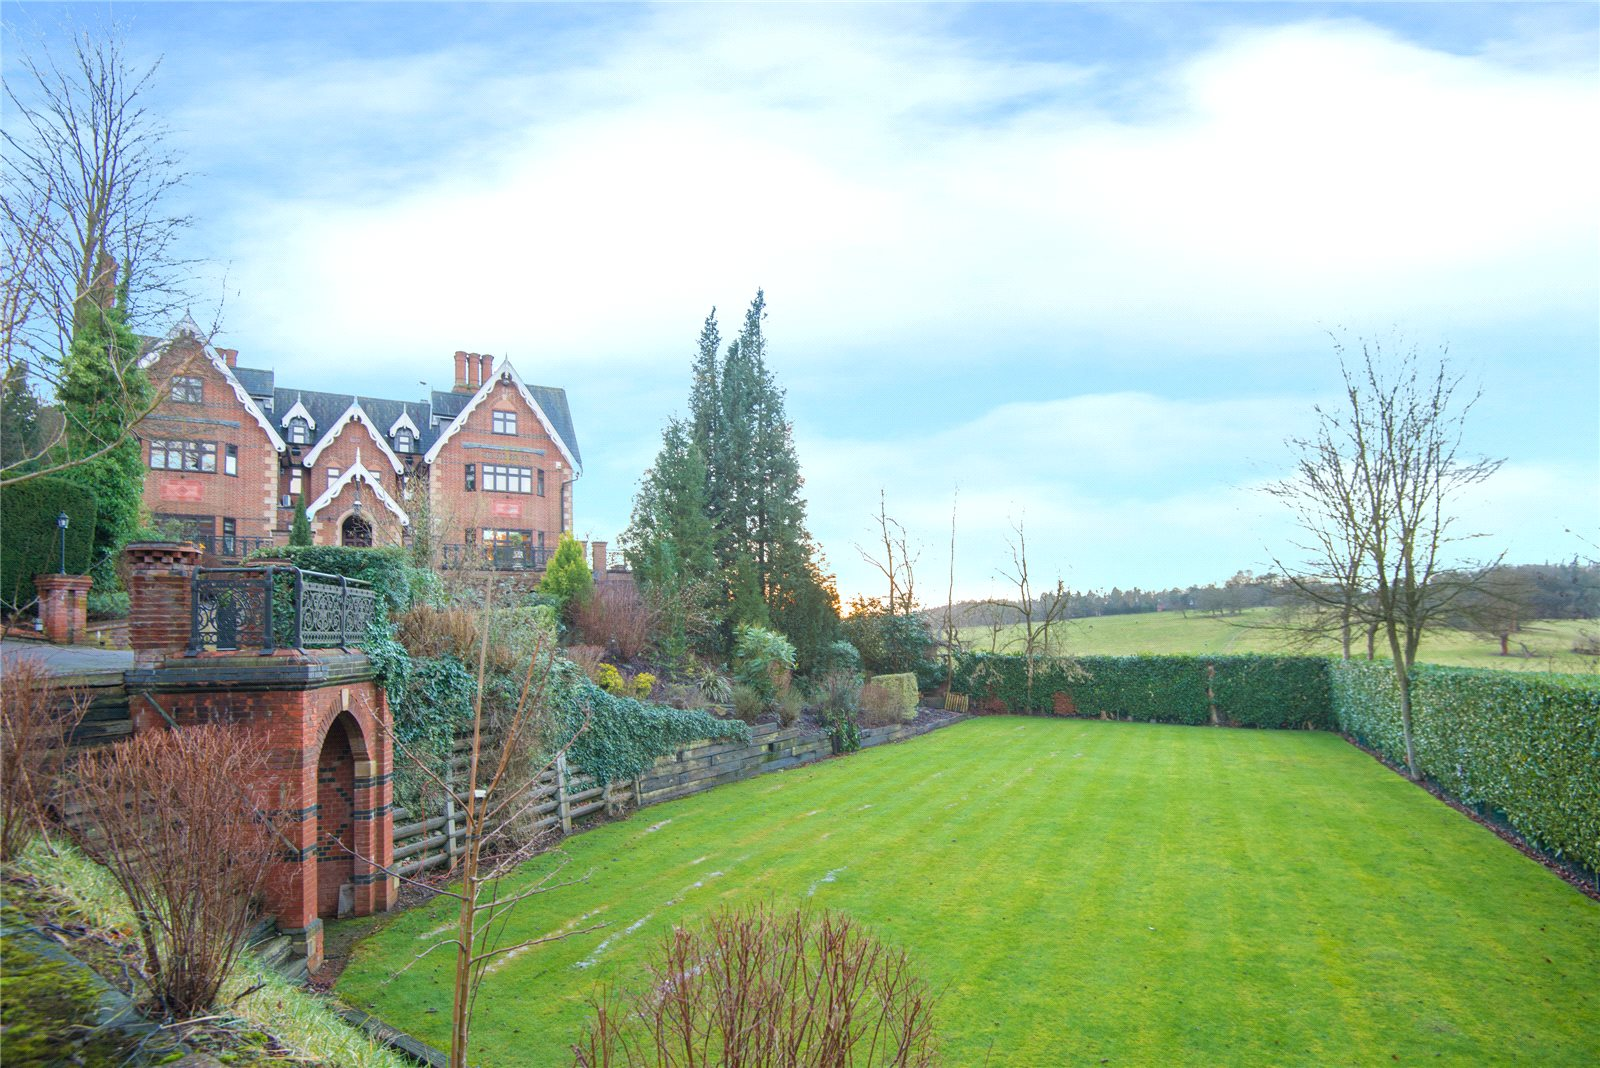 Additional photo for property listing at Main Drive, Gerrards Cross, Buckinghamshire, SL9 Gerrards Cross, イギリス